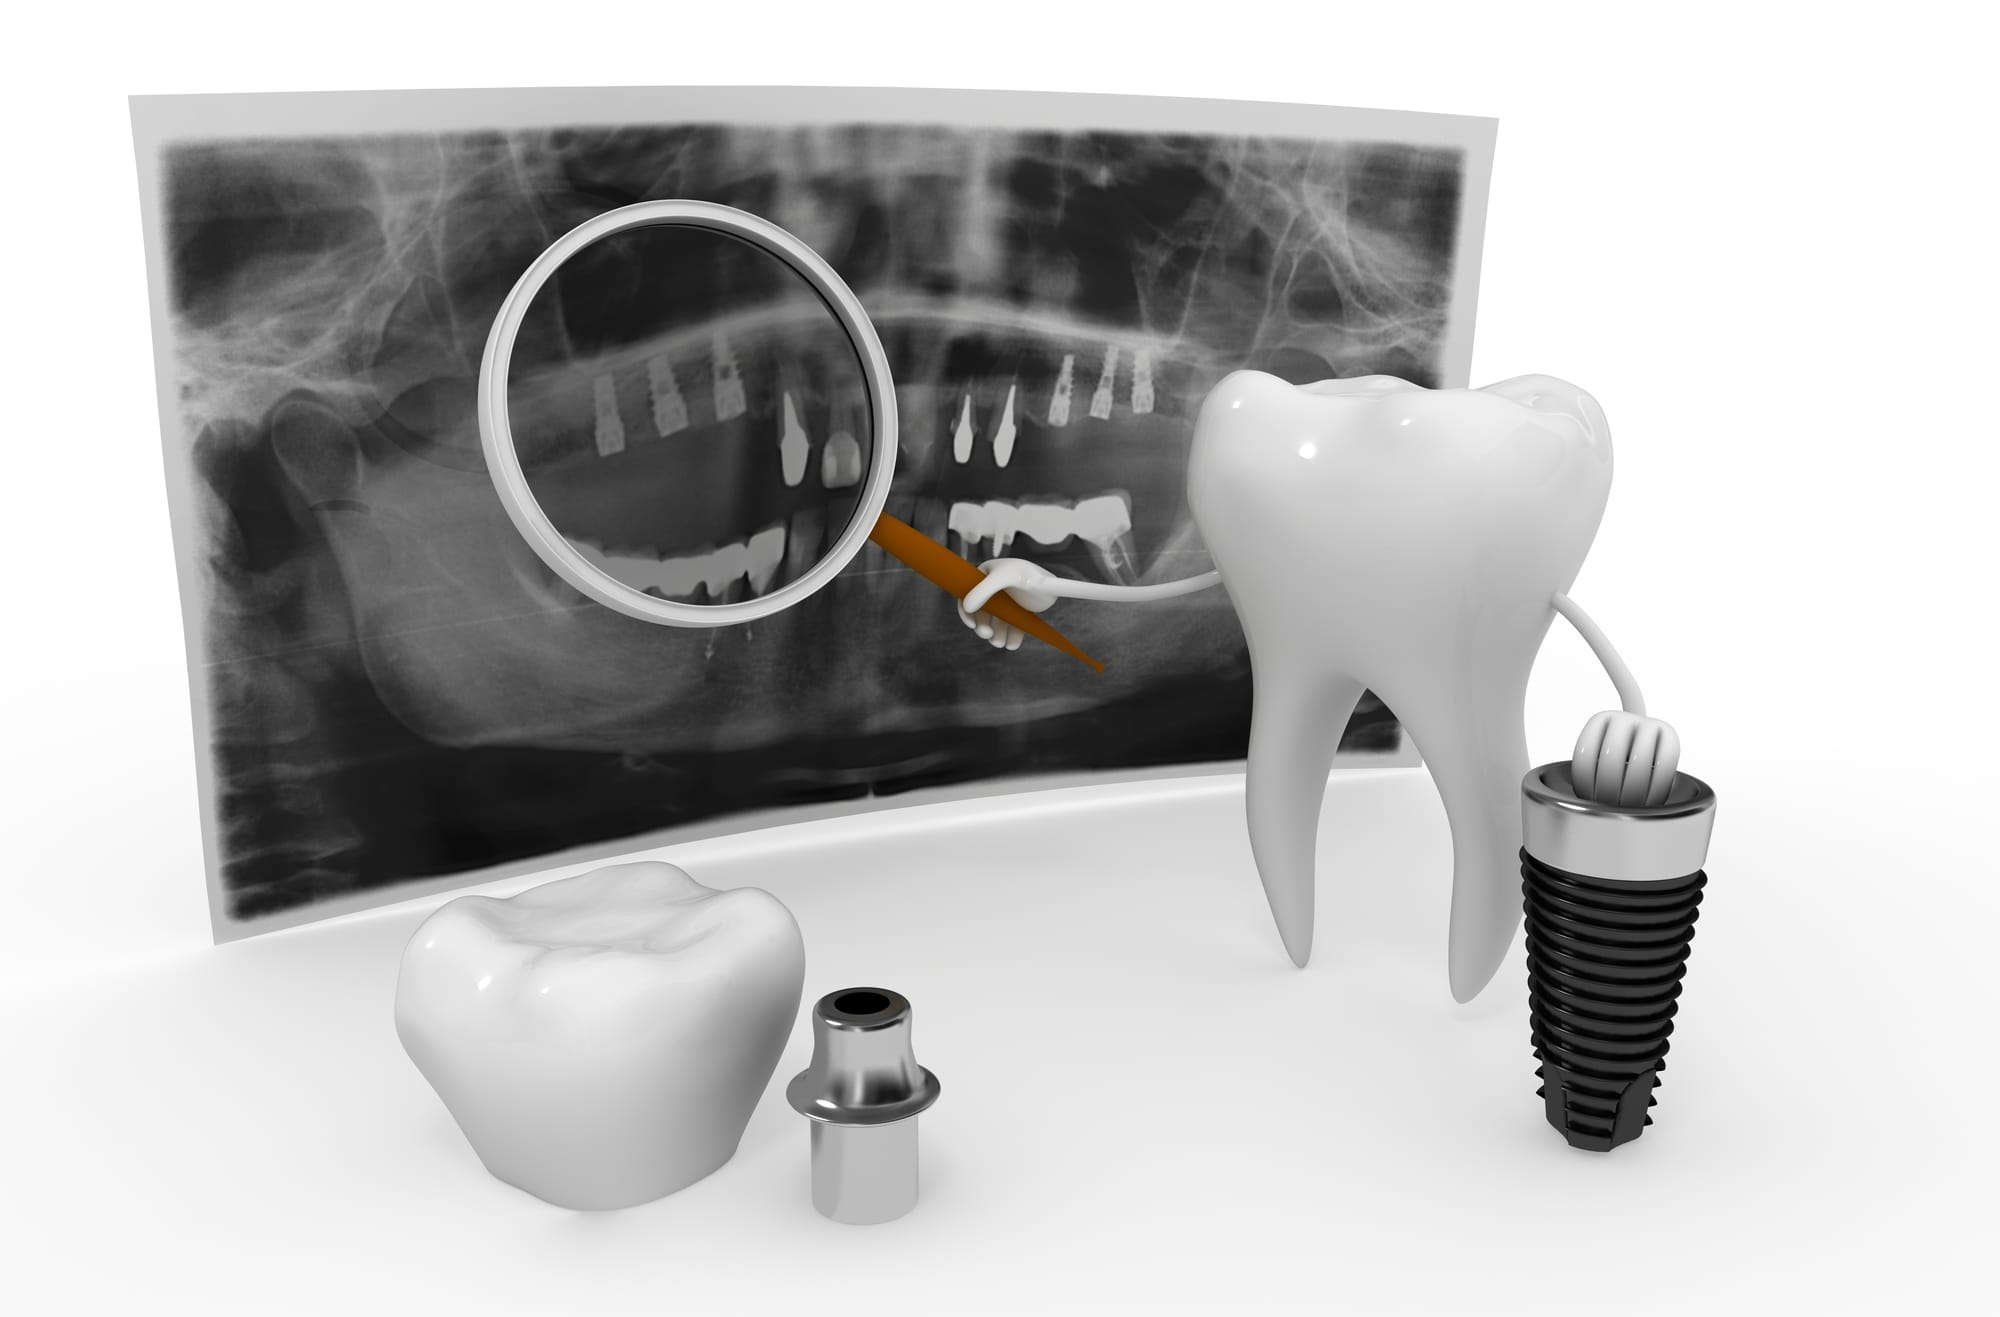 where can i find the best dental implants in tamiami to get me strong teeth?